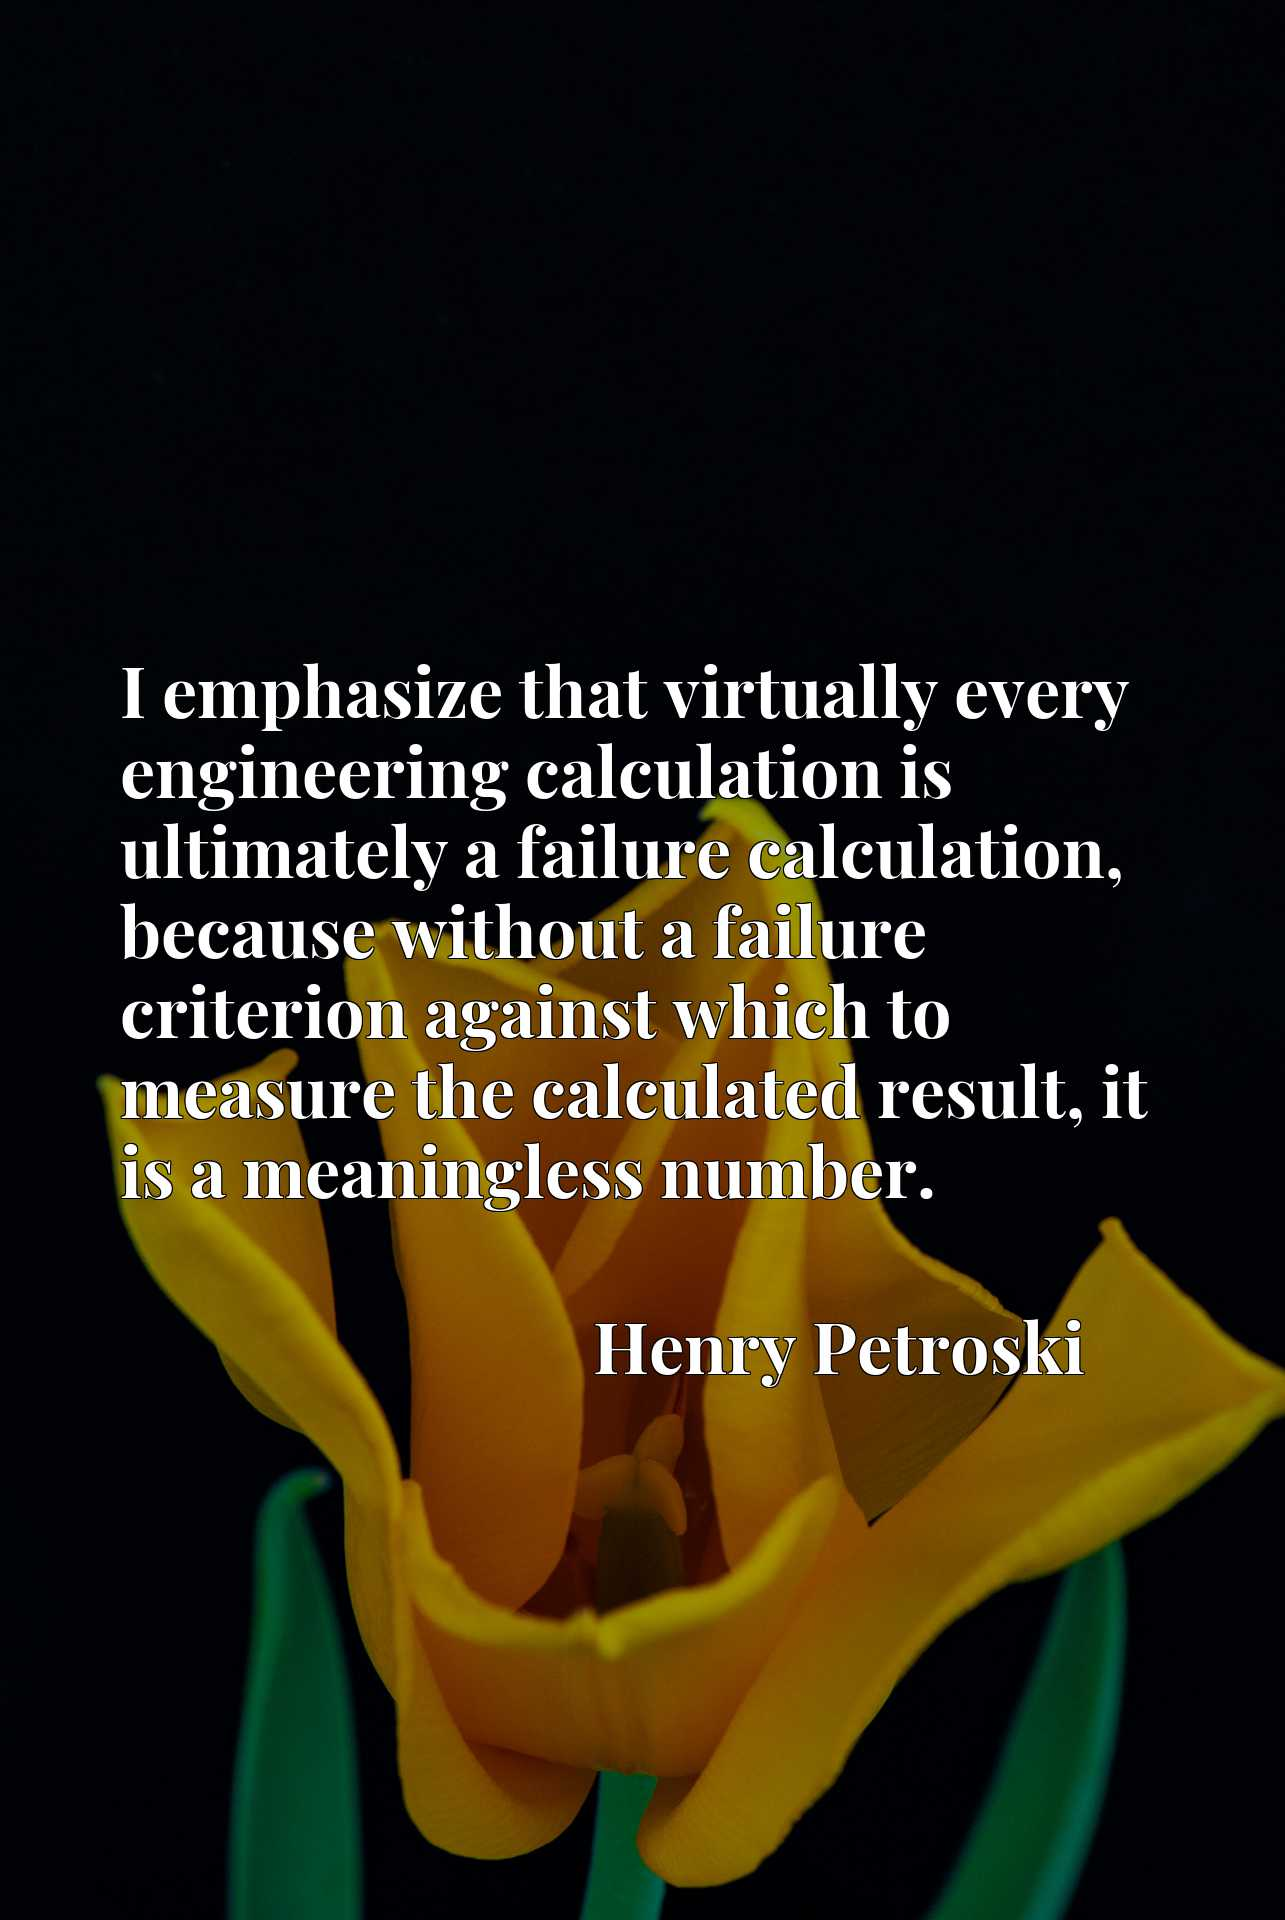 I emphasize that virtually every engineering calculation is ultimately a failure calculation, because without a failure criterion against which to measure the calculated result, it is a meaningless number.